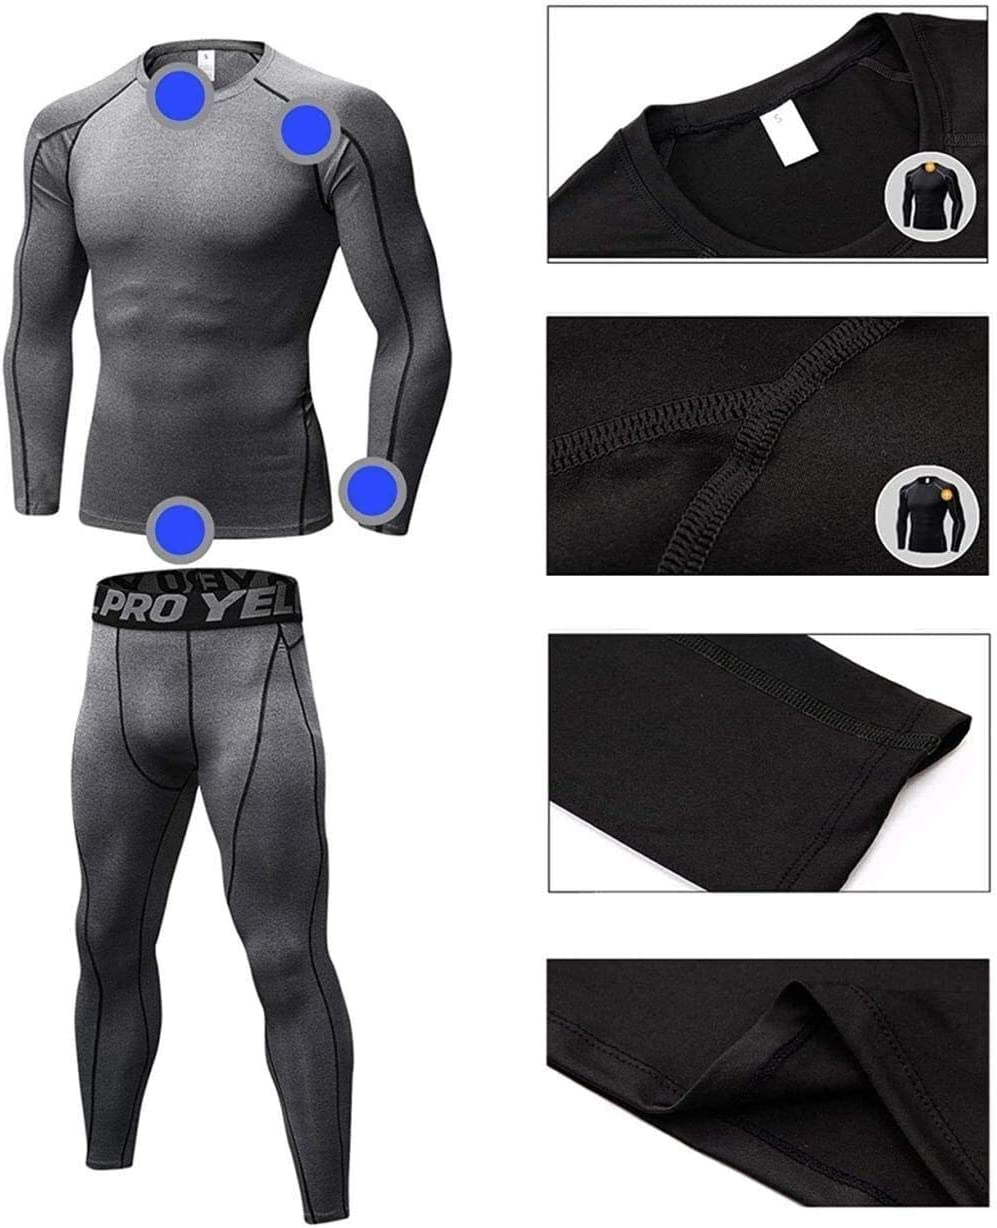 Fashion thermal underwear Thermal Underwear Men Set Long Sleeve Breathable Base Layers Lightweight And Comfortable For Outdoor Winter Activities Including Skiing Hiking ( Color : A , Size : X-Large )